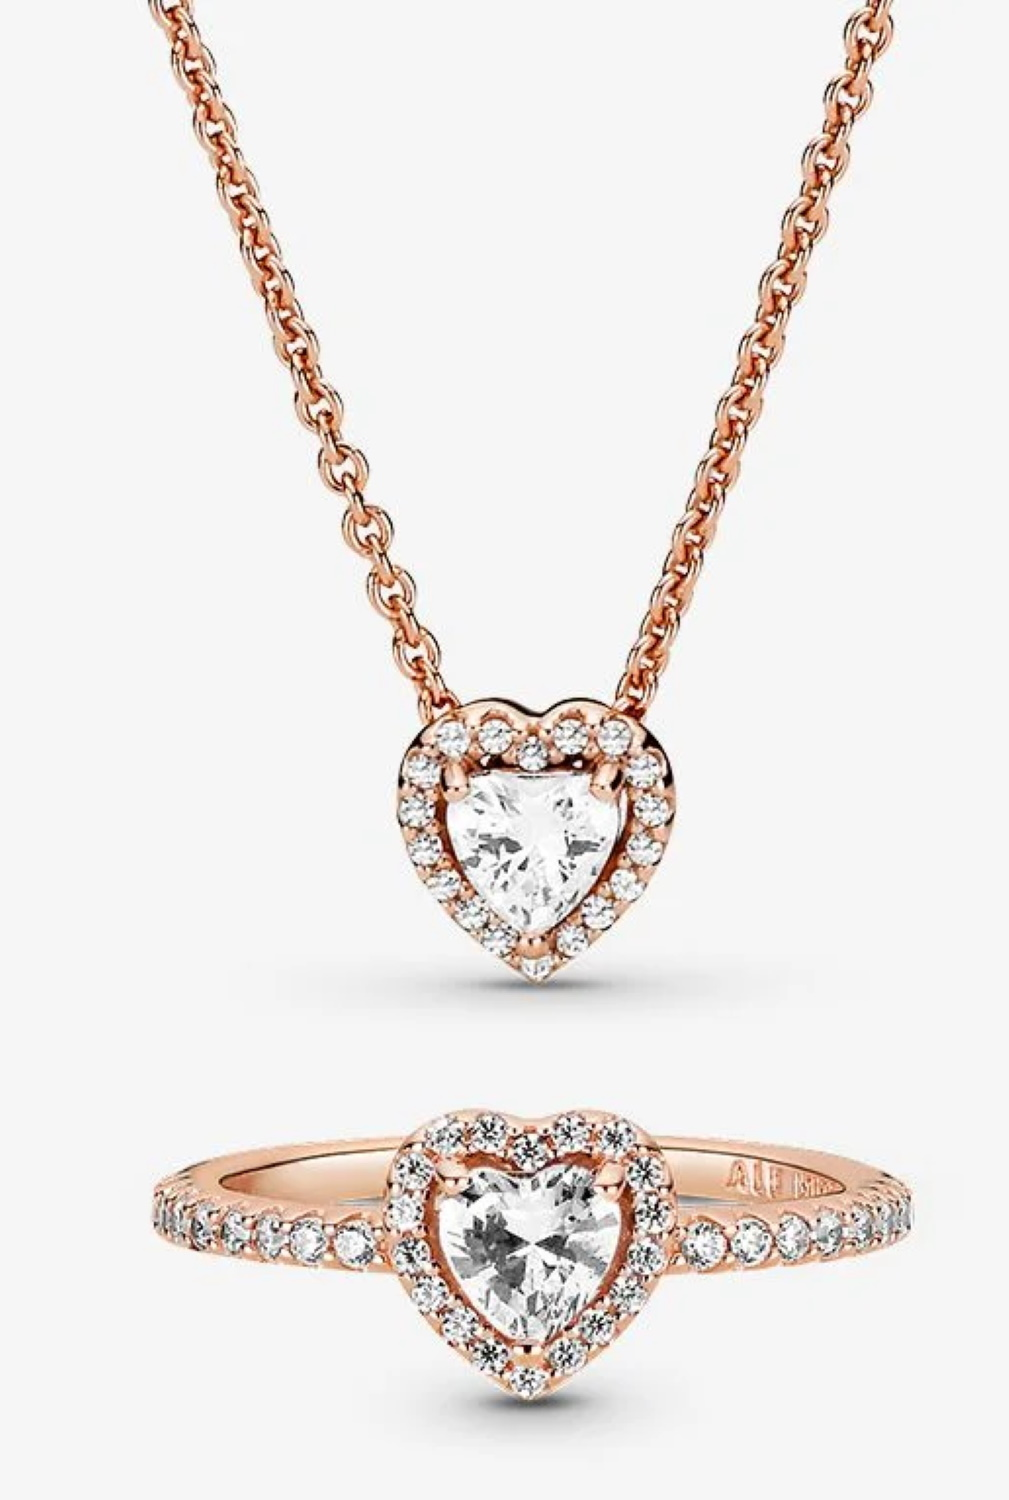 Pandora Classic Love Necklace and Ring Set